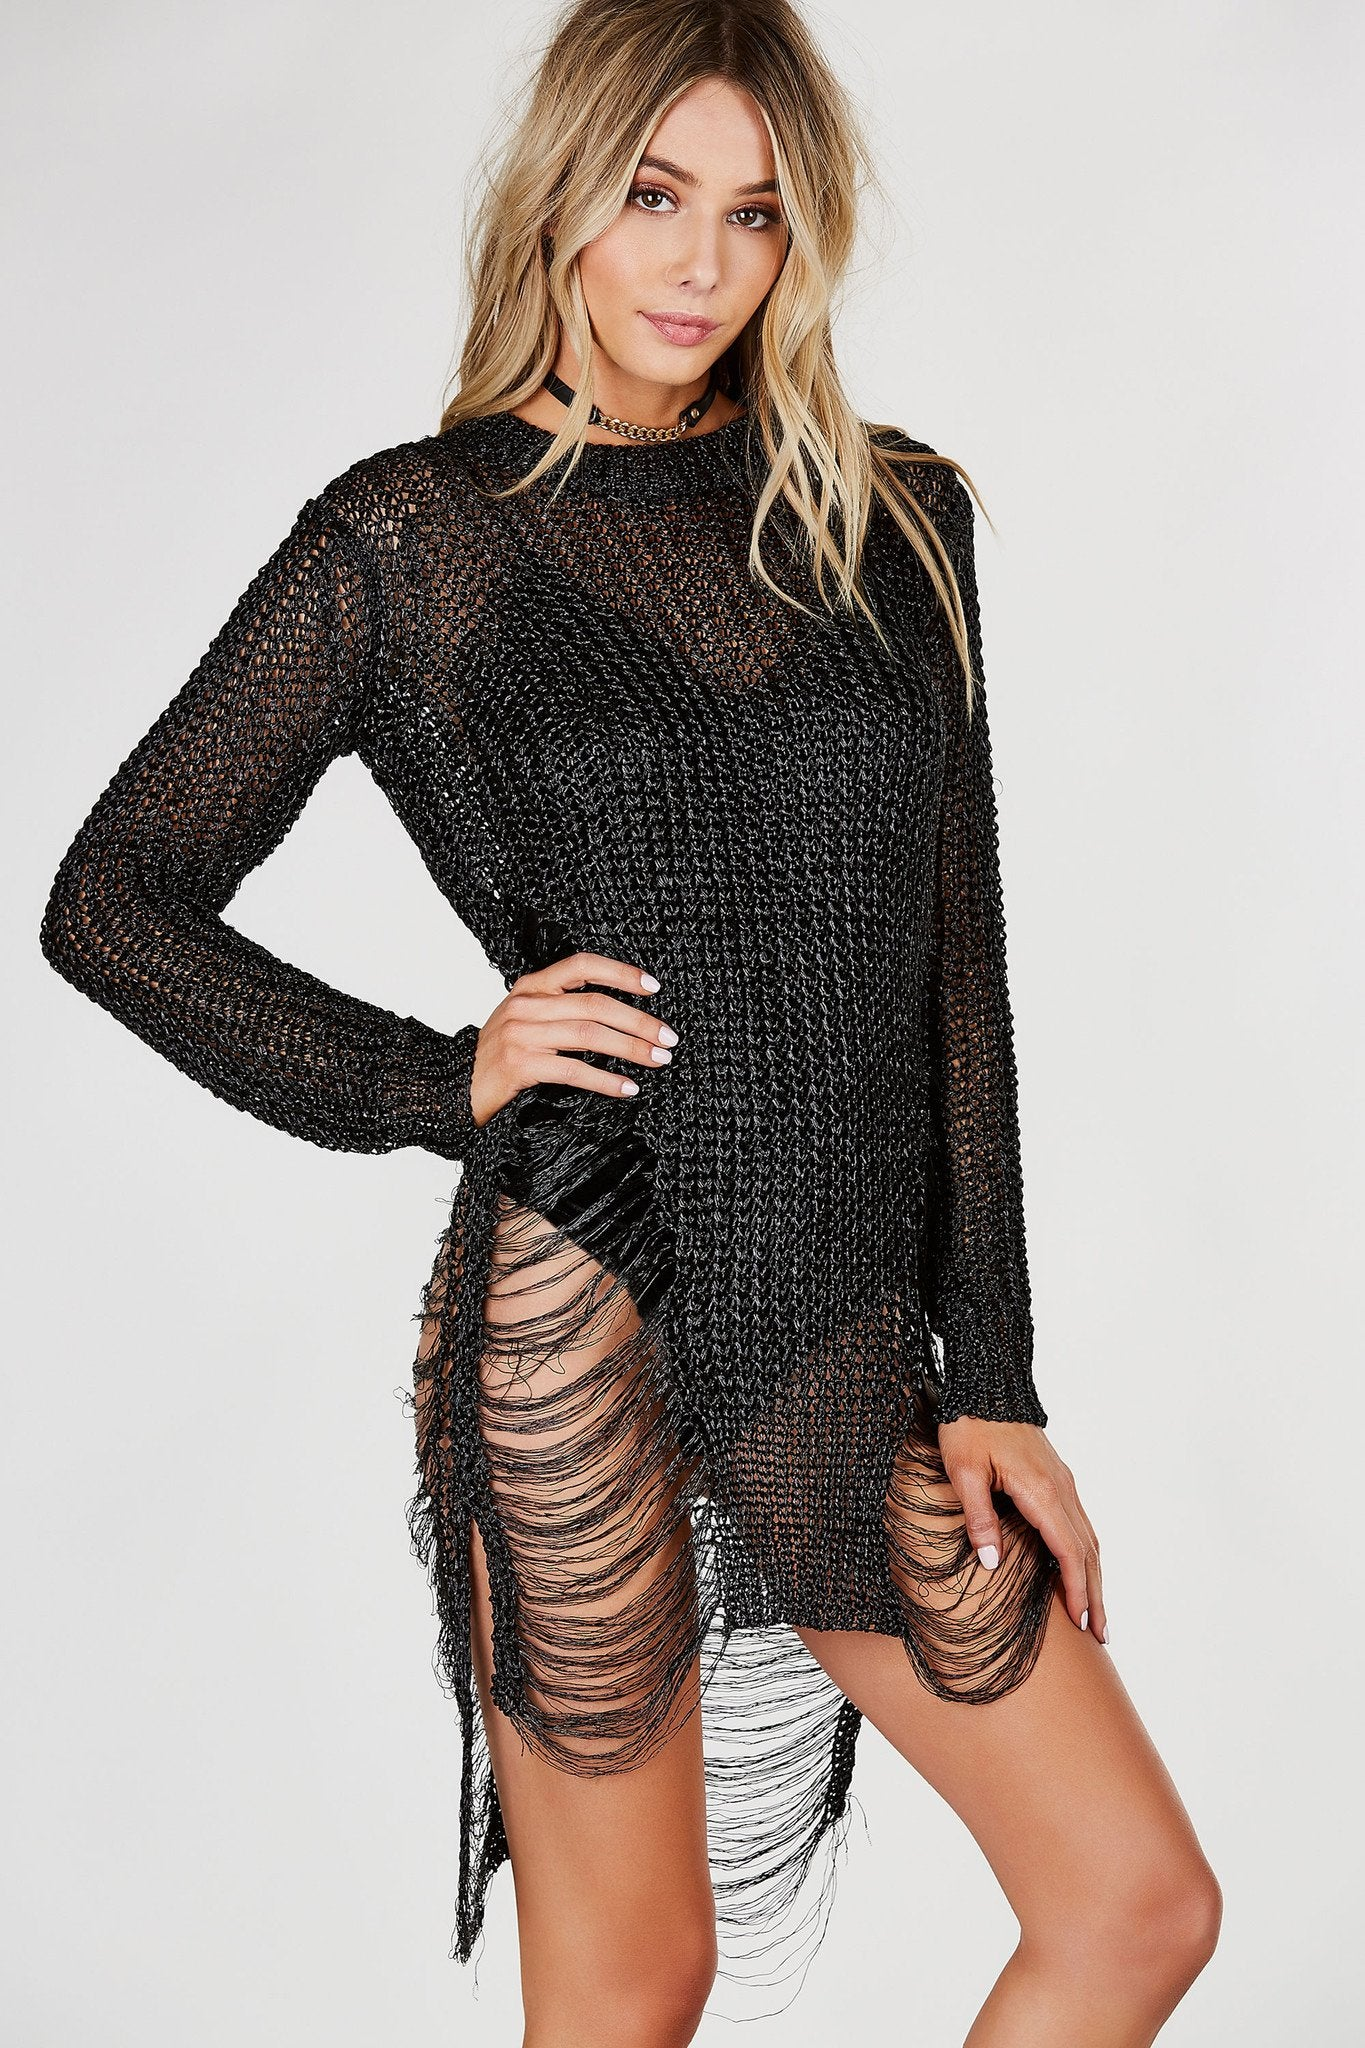 Crew neck loose knit tunic with metallic finish. Shredded detailing with relaxed fit.